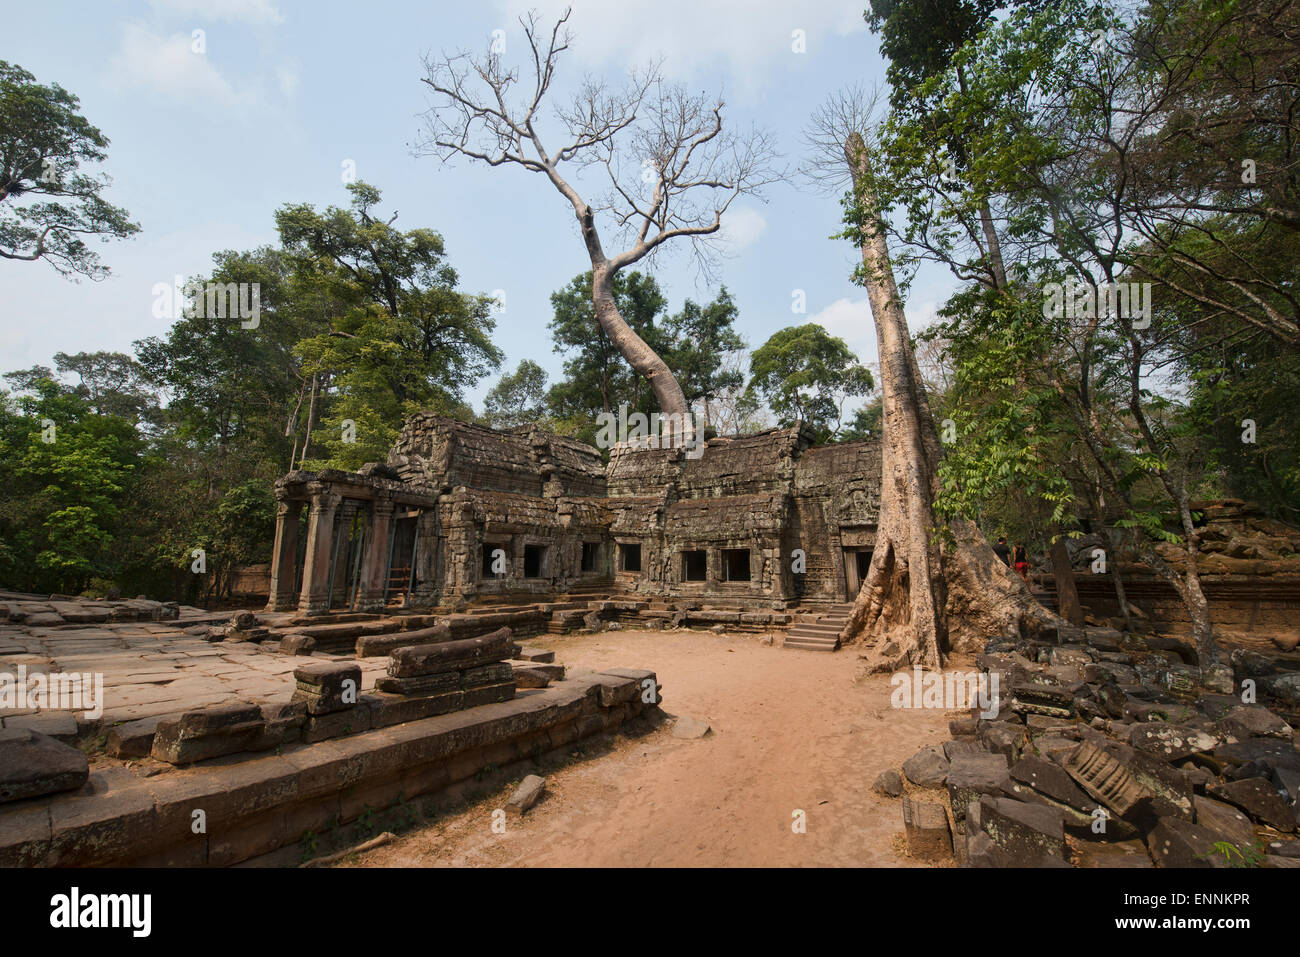 Ta Phrom, the jungle temple at Angkor Wat in Siem Reap, Cambodia - Stock Image